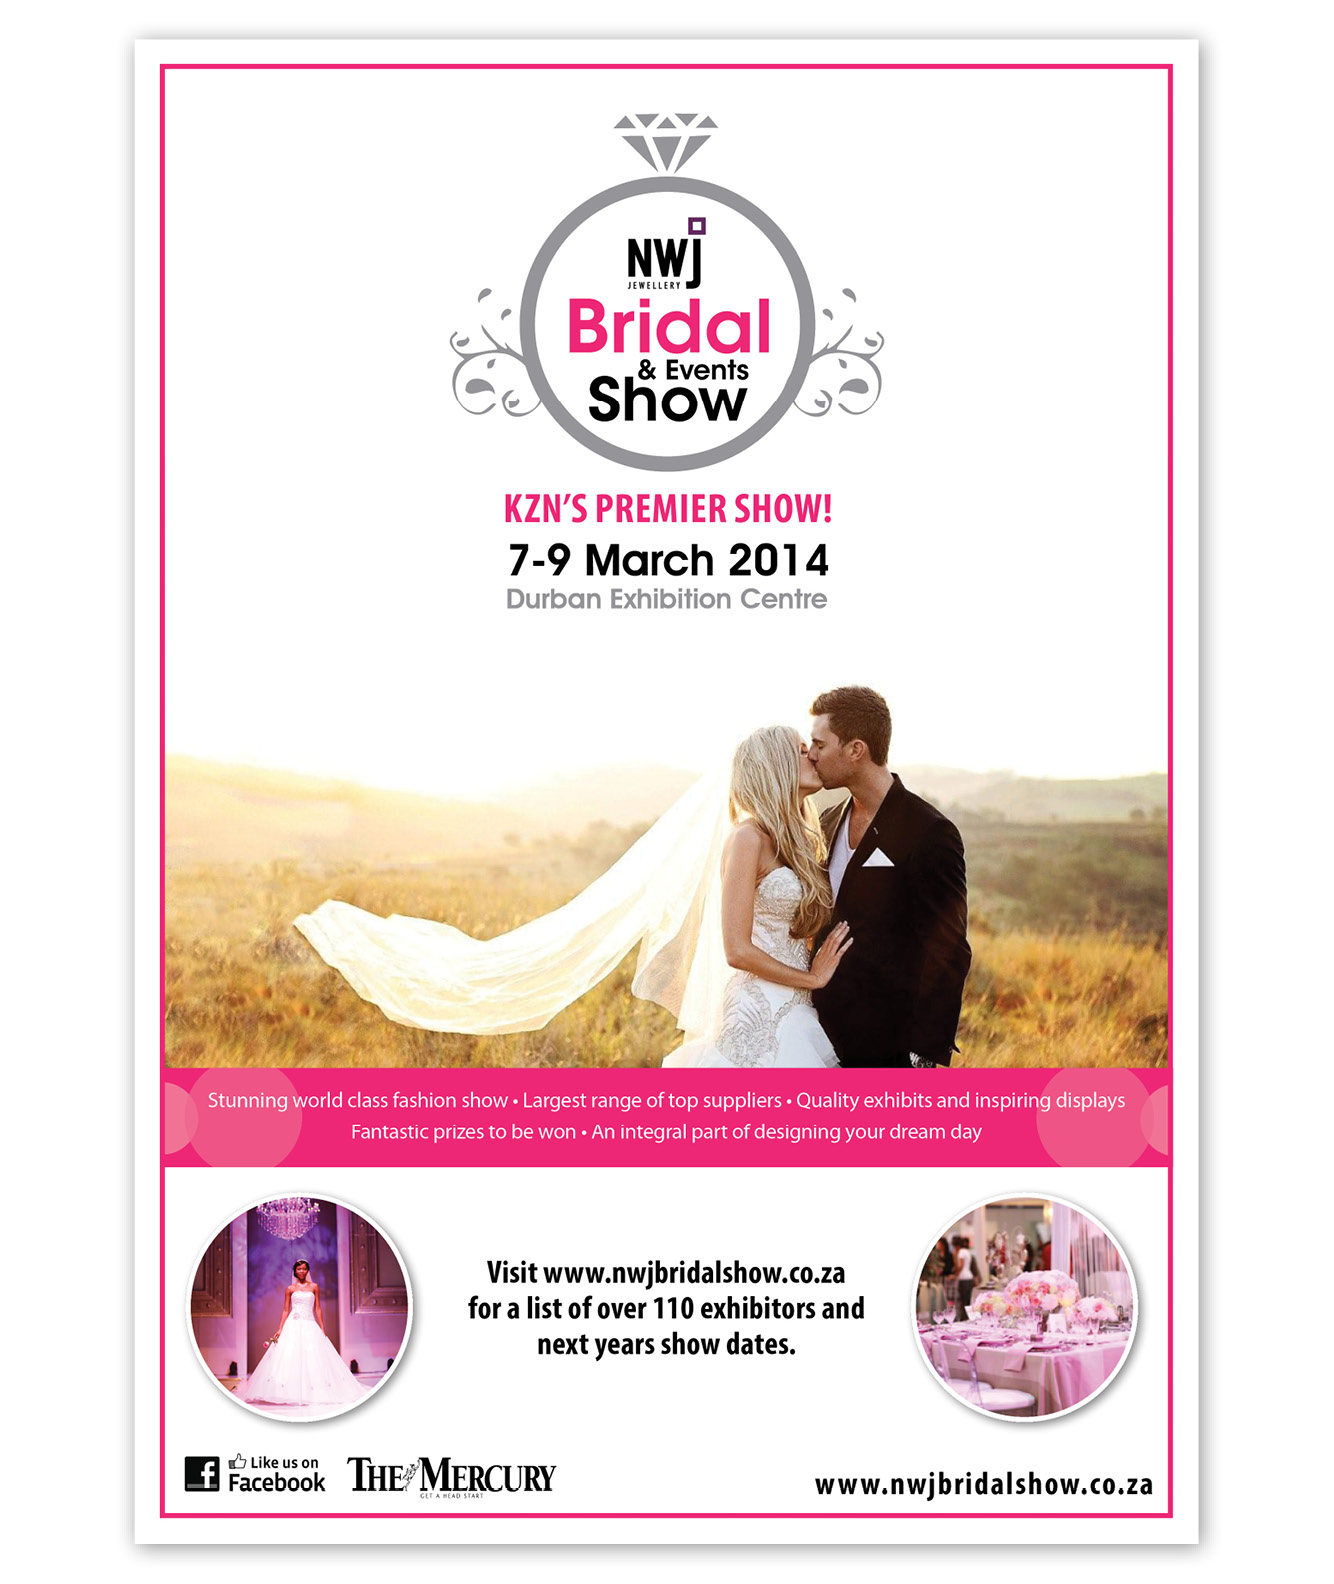 NWJ Bridal and Events Show Poster